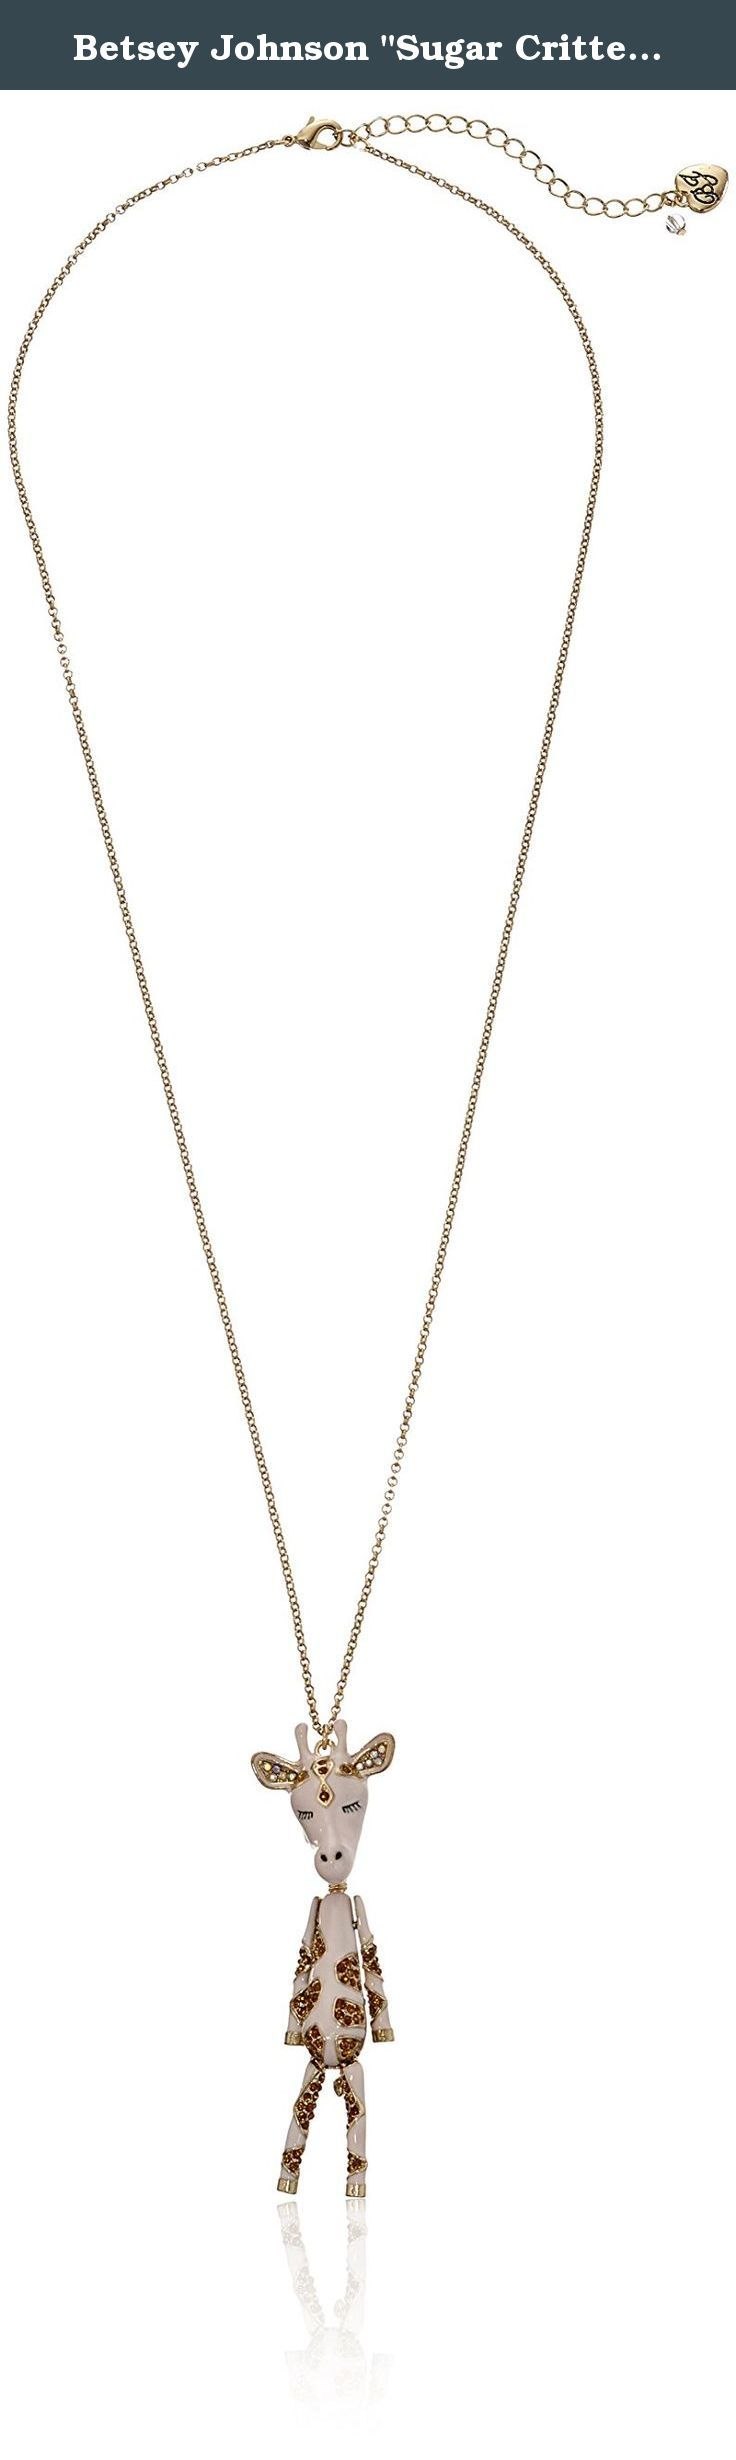 """Betsey Johnson """"Sugar Critters"""" Giraffe Long Pendant Necklace, 28"""" + 3"""" inches. Items that are handmade may vary in size, shape and color. Made in China."""